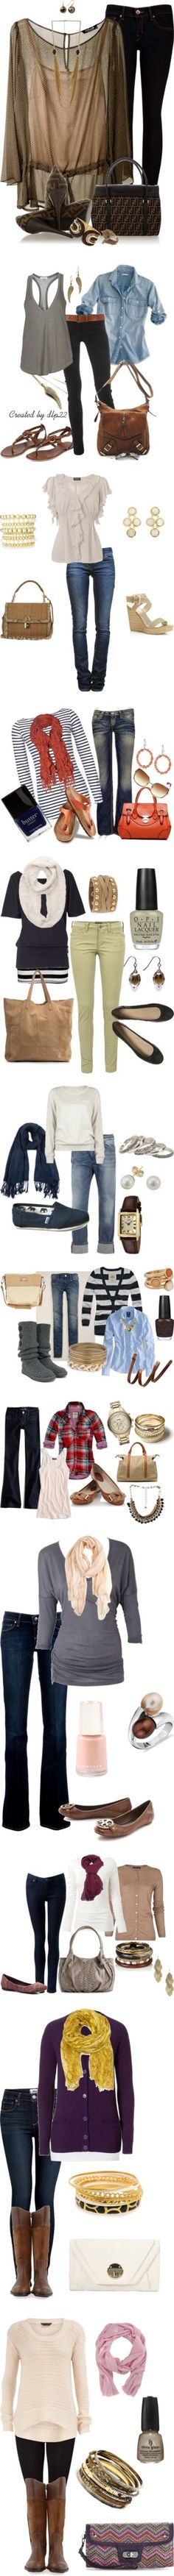 """""""Cute Clothes To Wear To School"""" by haleyalexis17 ❤ liked on Polyvore"""